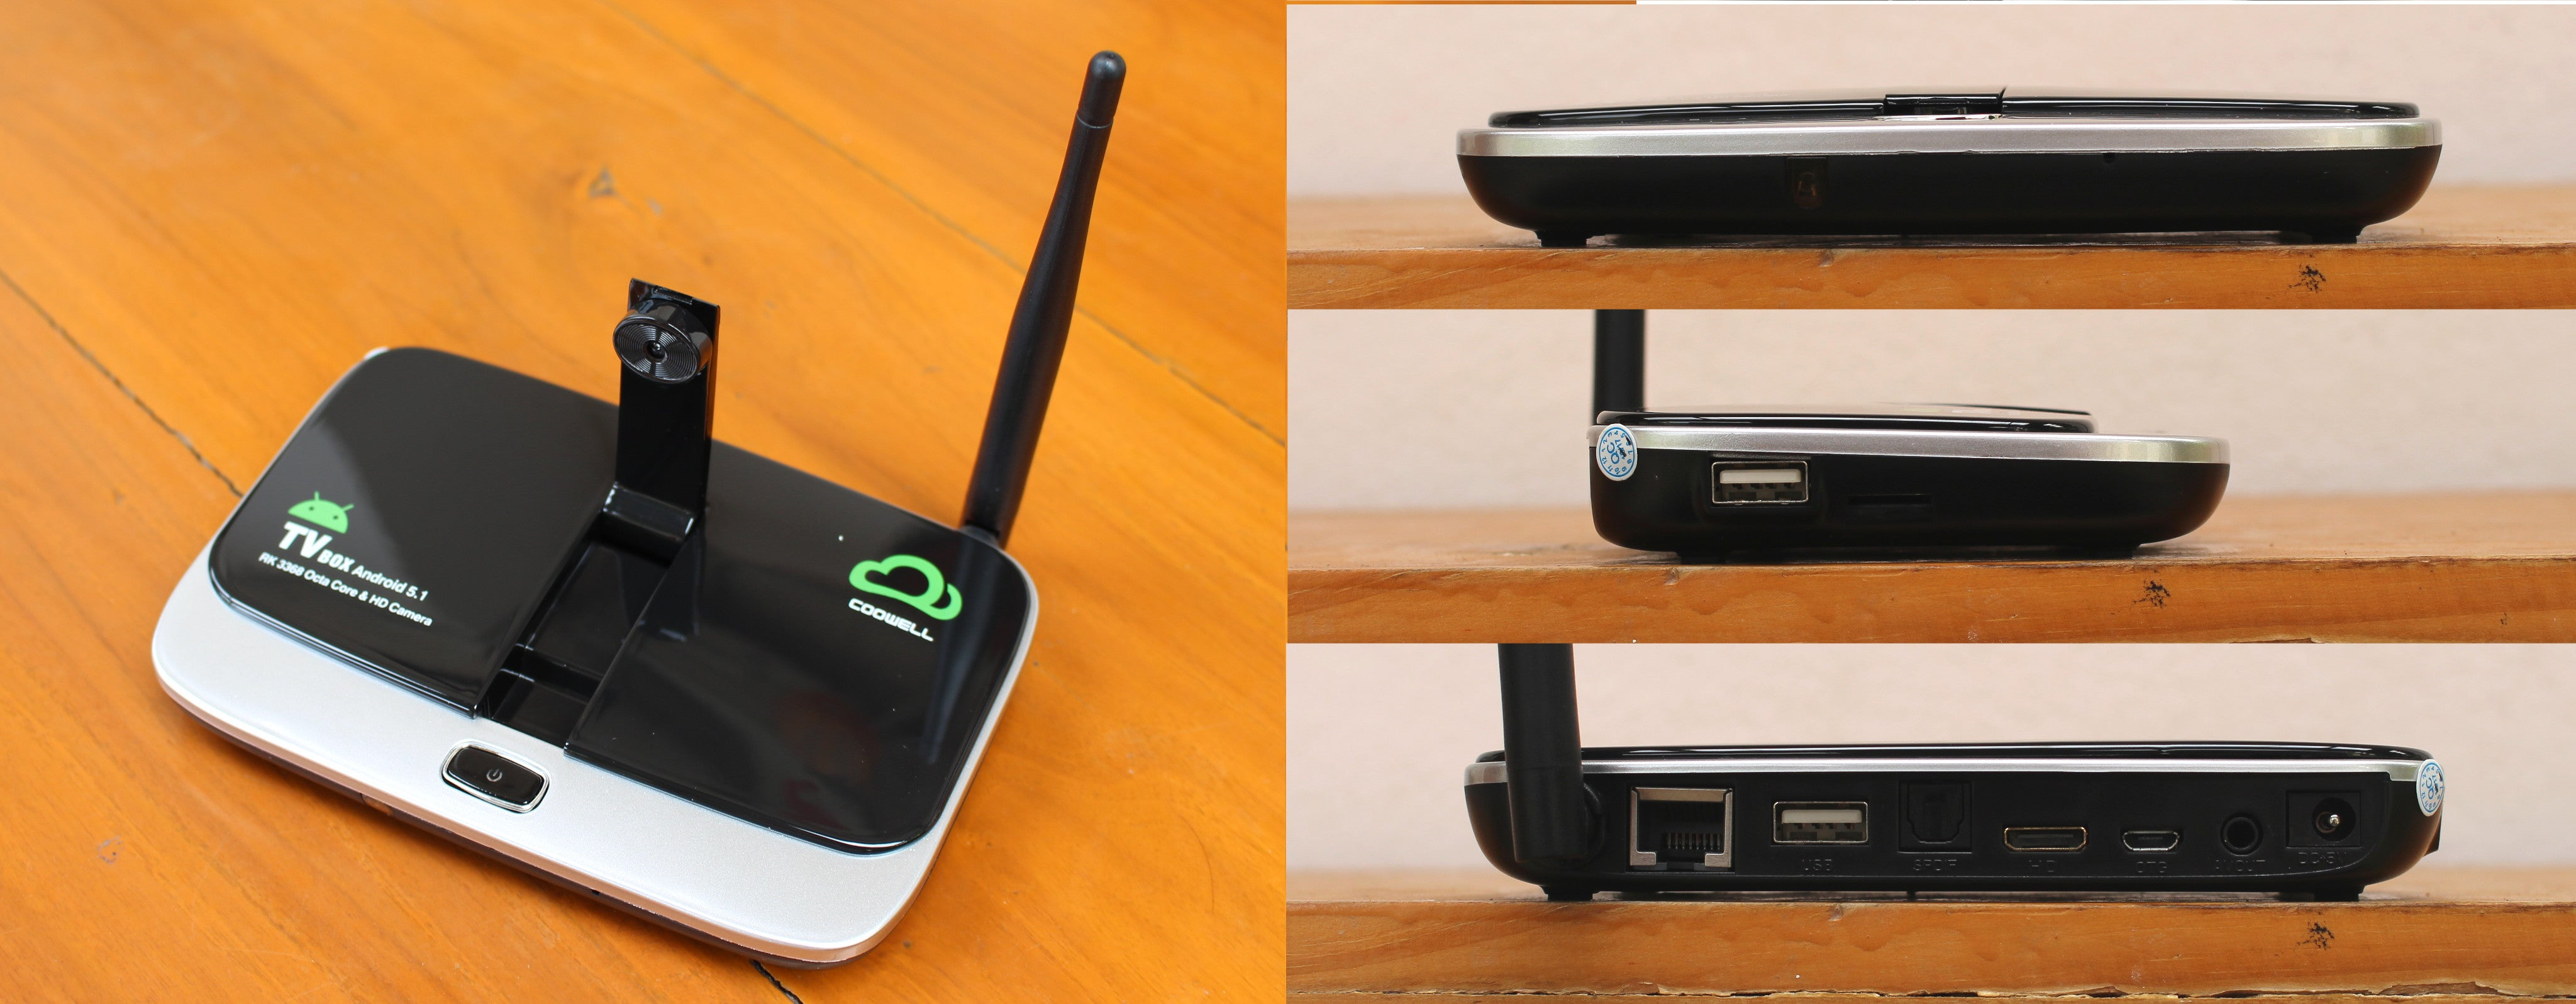 THE CORE POCKET MEDIA PLAYER TCPMP